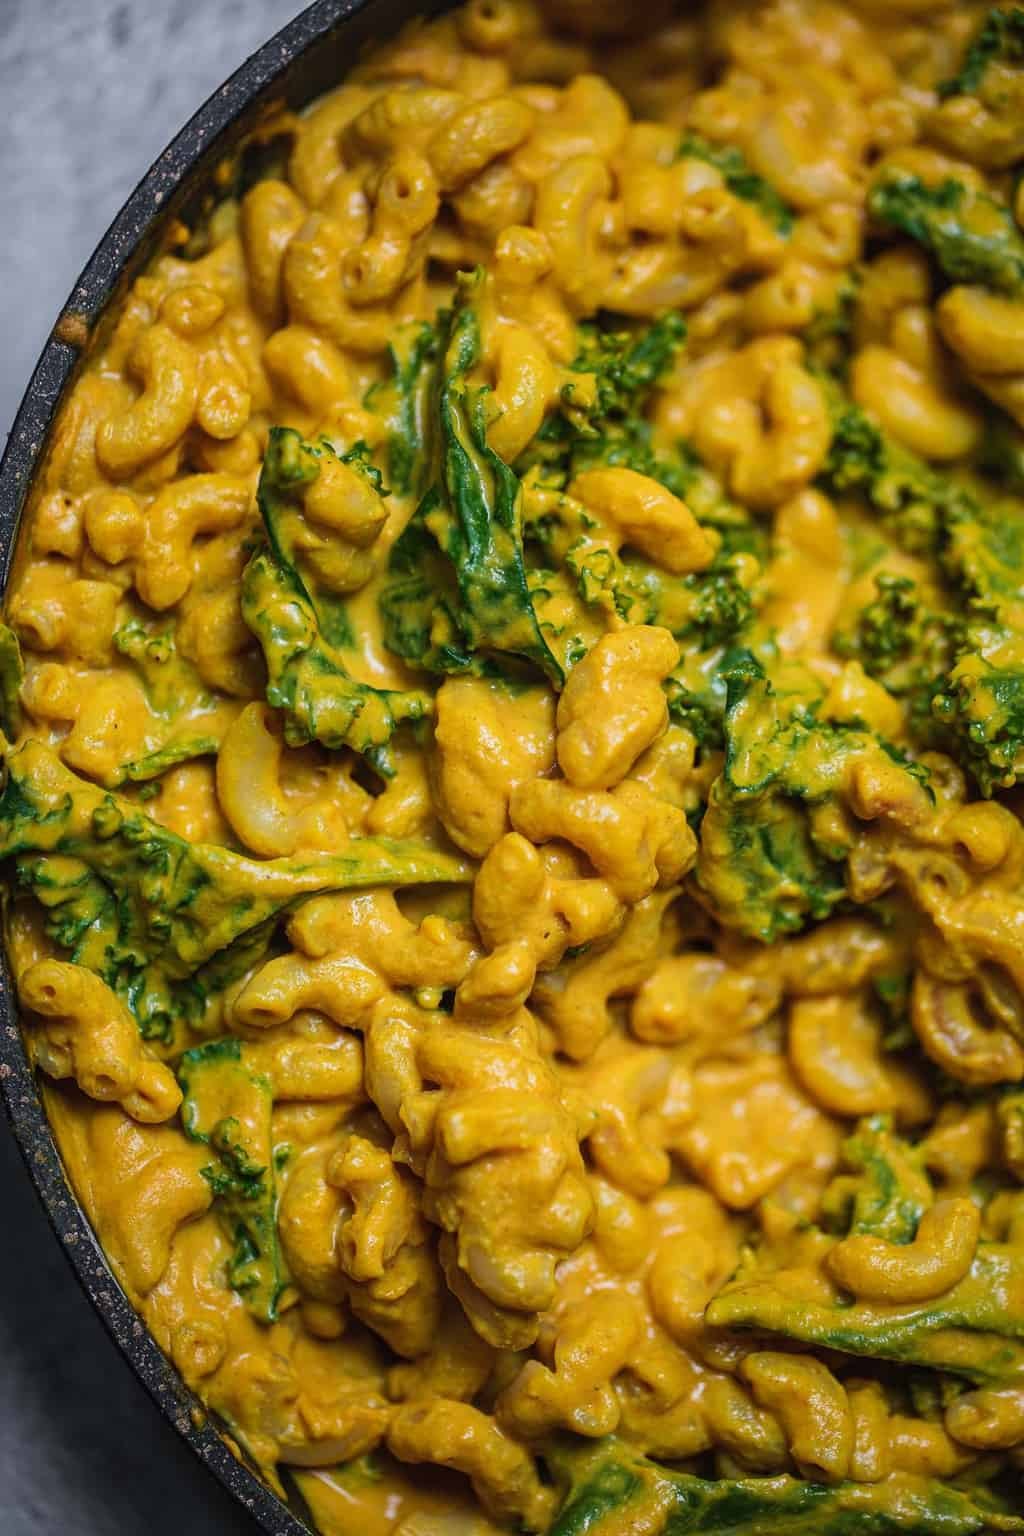 Macaroni pasta with kale in a large frying pan